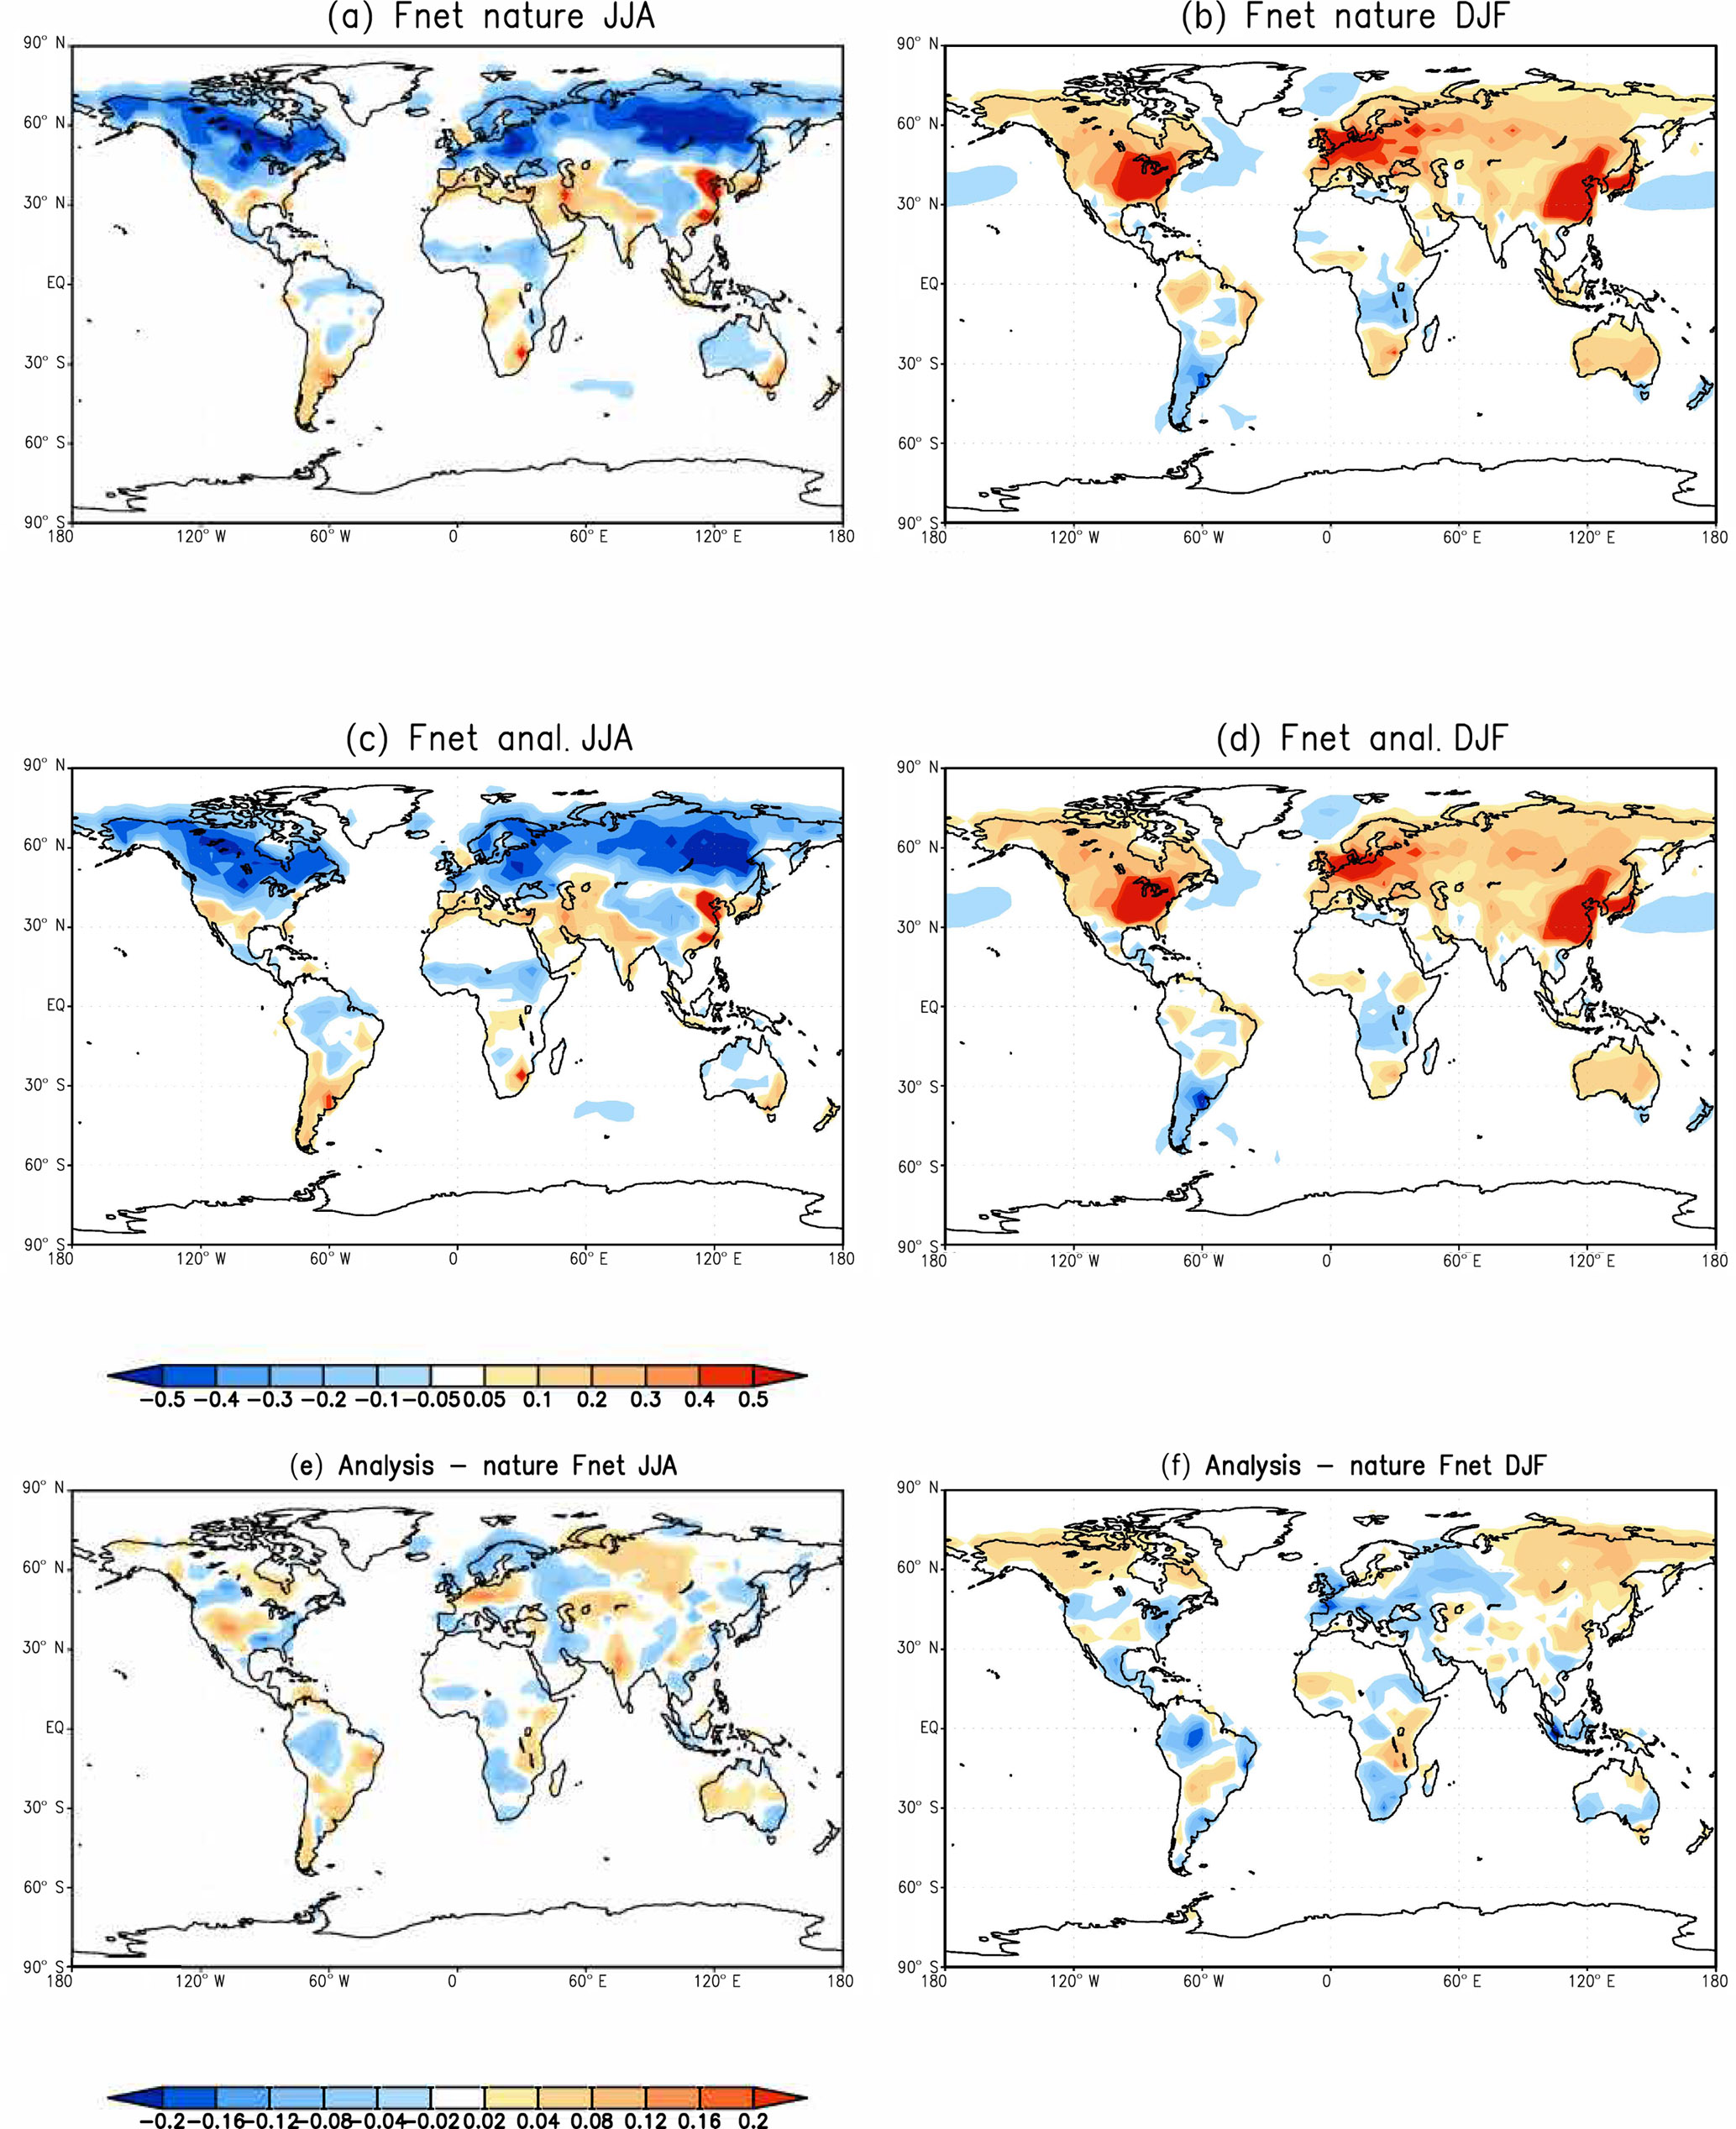 GMD - Estimating surface carbon fluxes based on a local